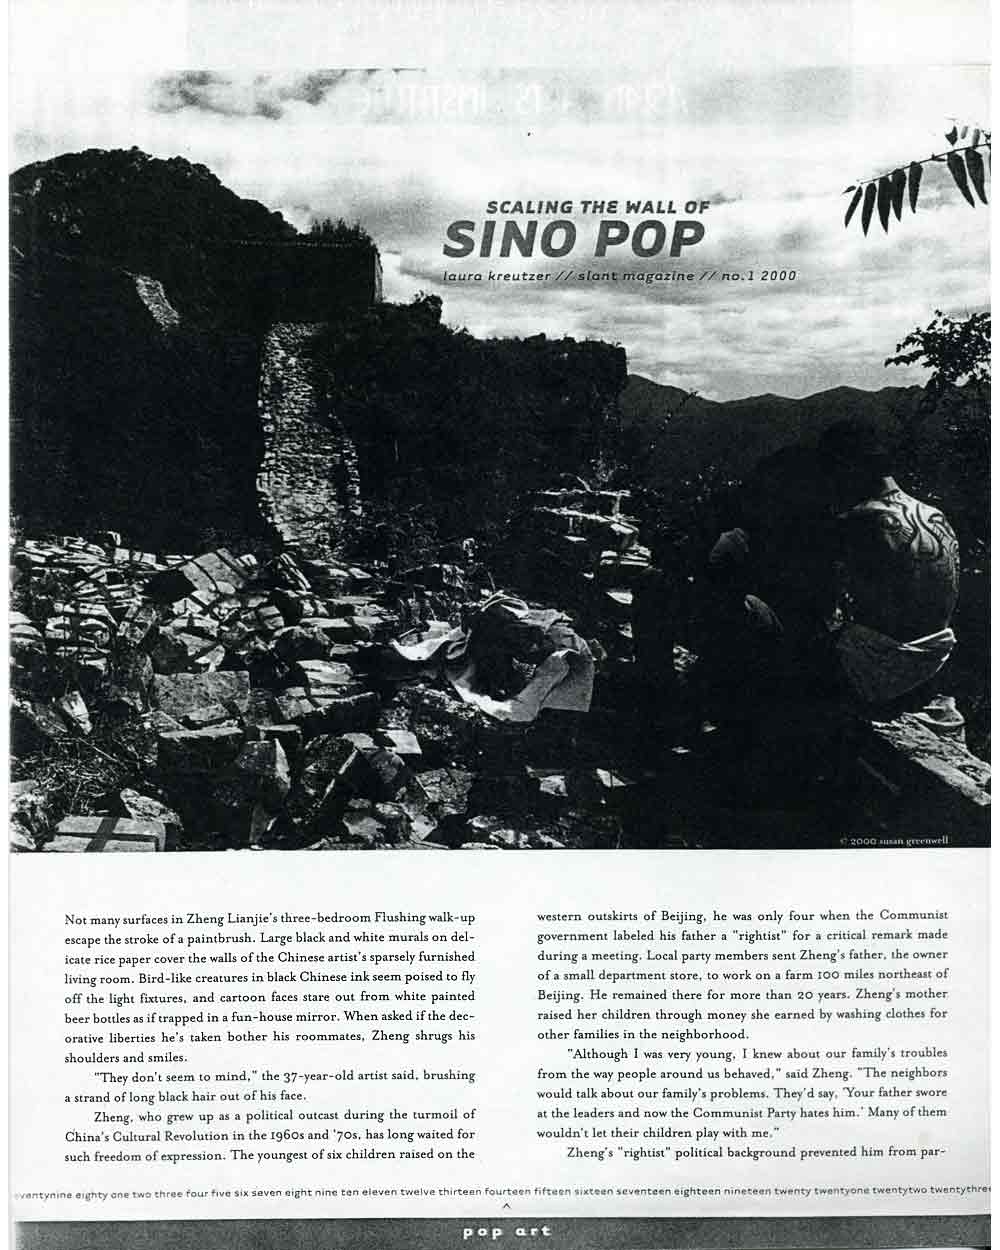 Article, Scaling the Wall of Sino Pop, pg 2